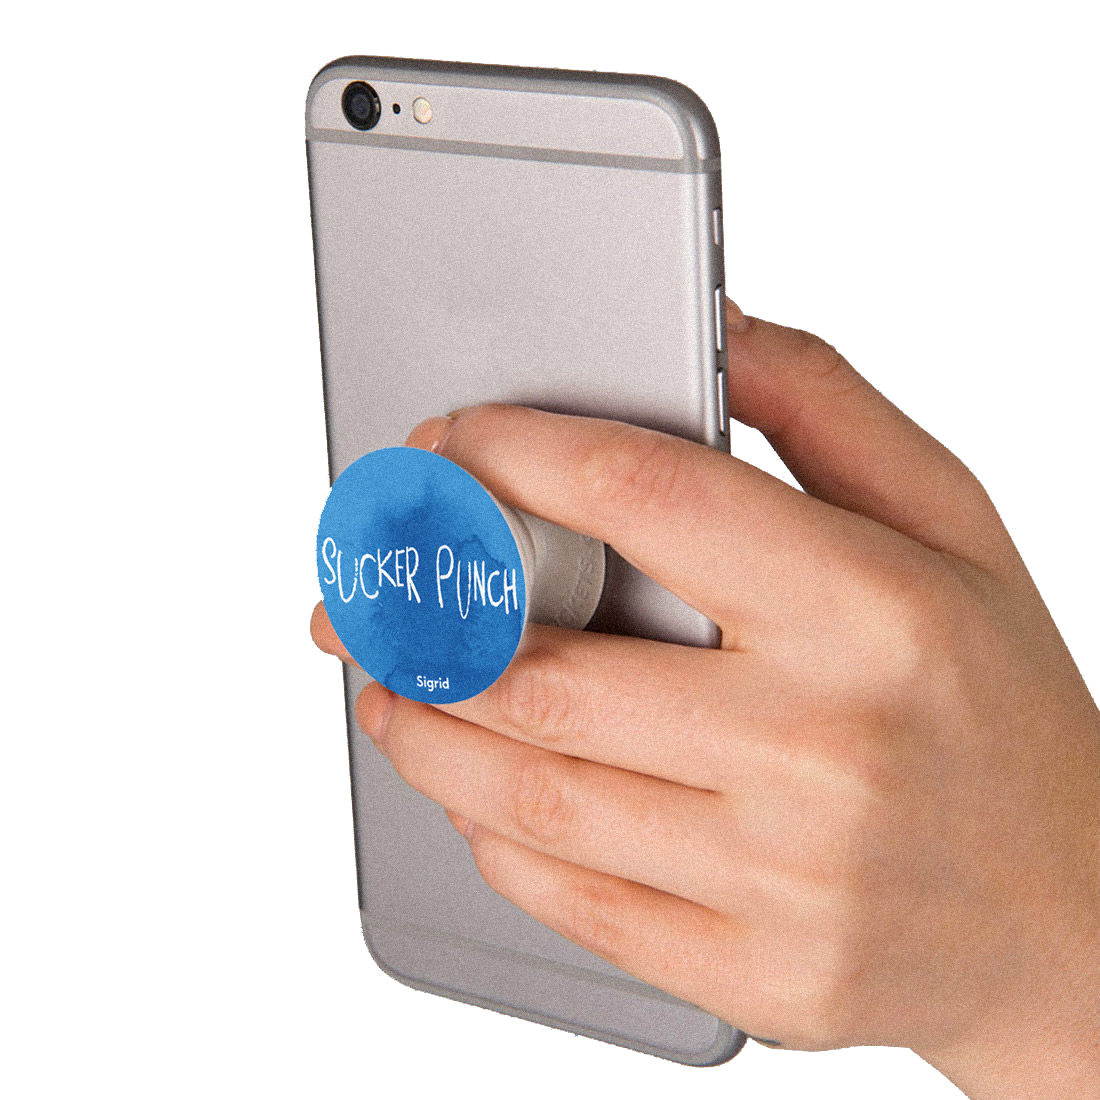 Sigrid: Sucker Punch Pop socket